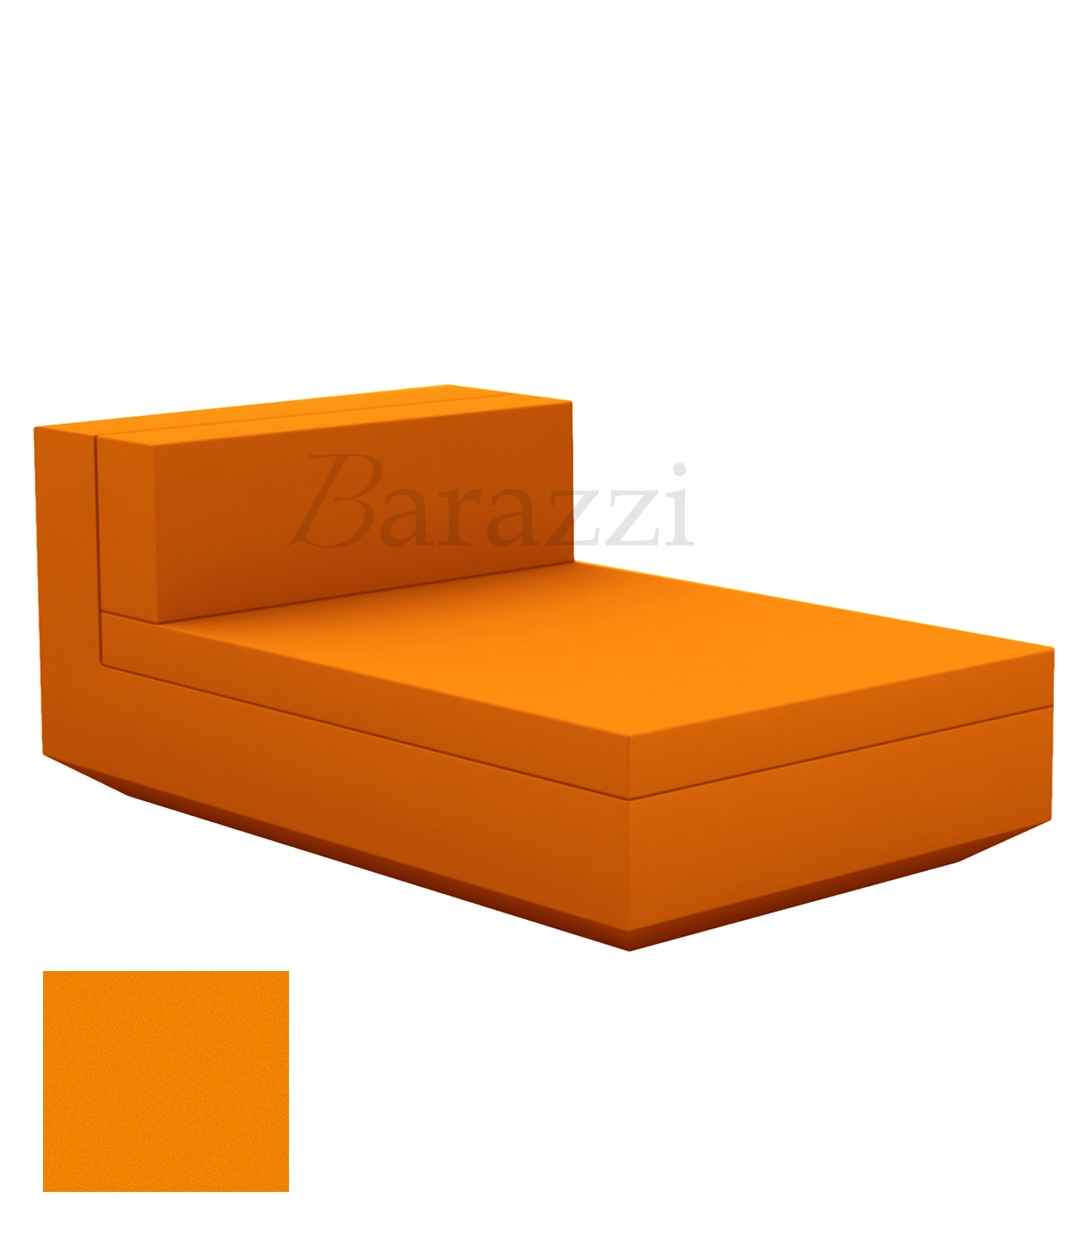 Outdoor Sectional Matt Couch Central Vela Sofa by Vondom